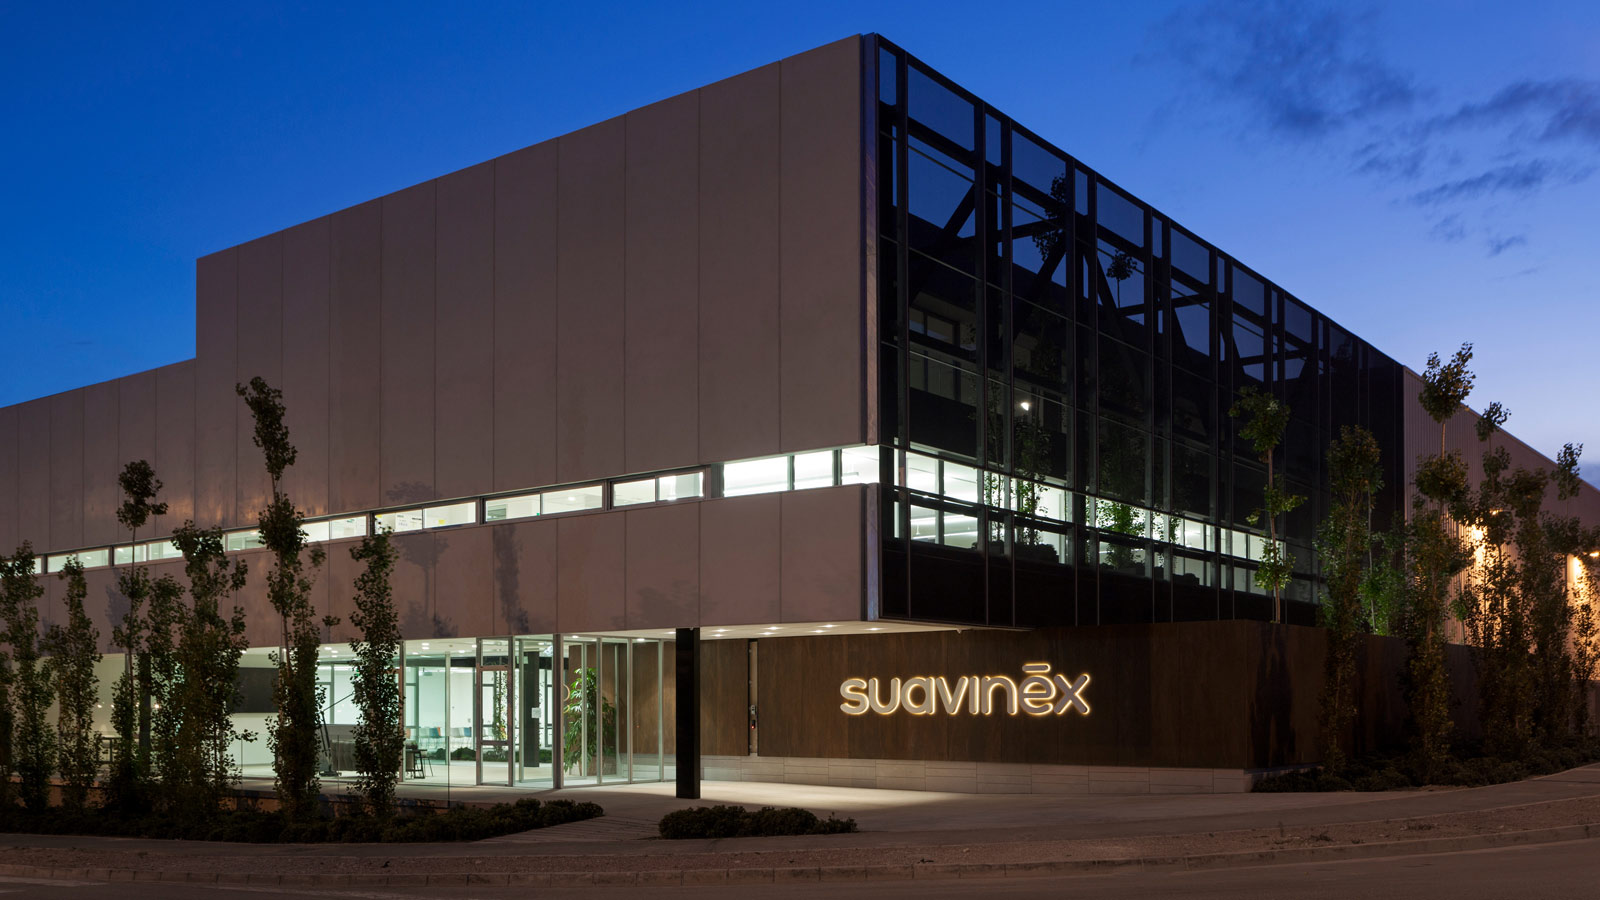 The new Suavinex offices in Alicante bank on a sensory and collaborative atmosphere